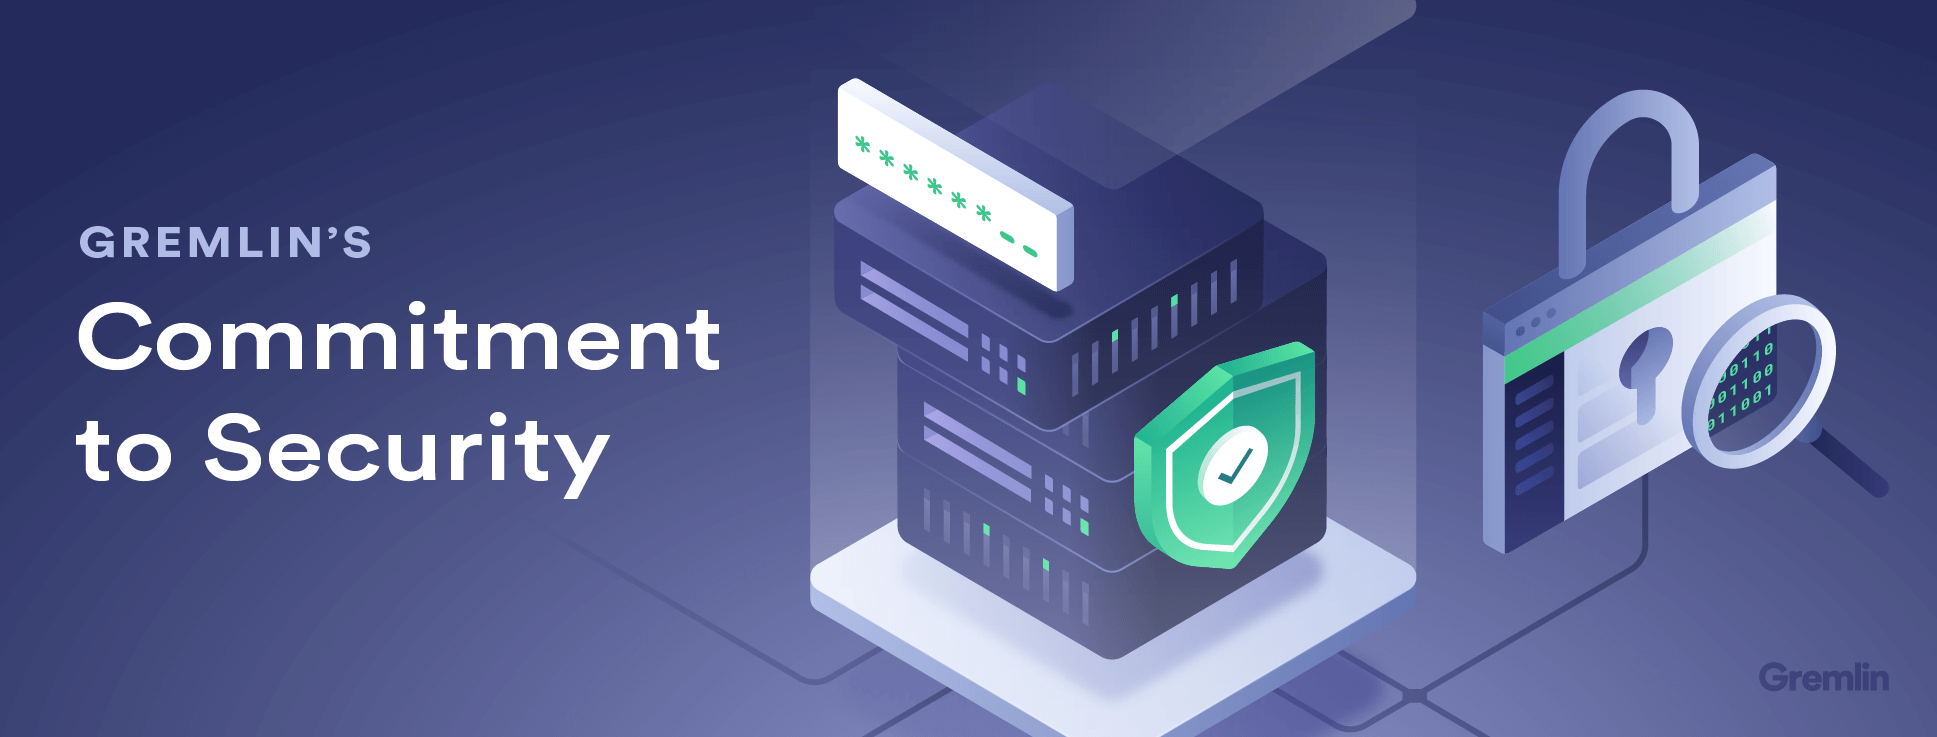 Gremlin's Commitment to Security